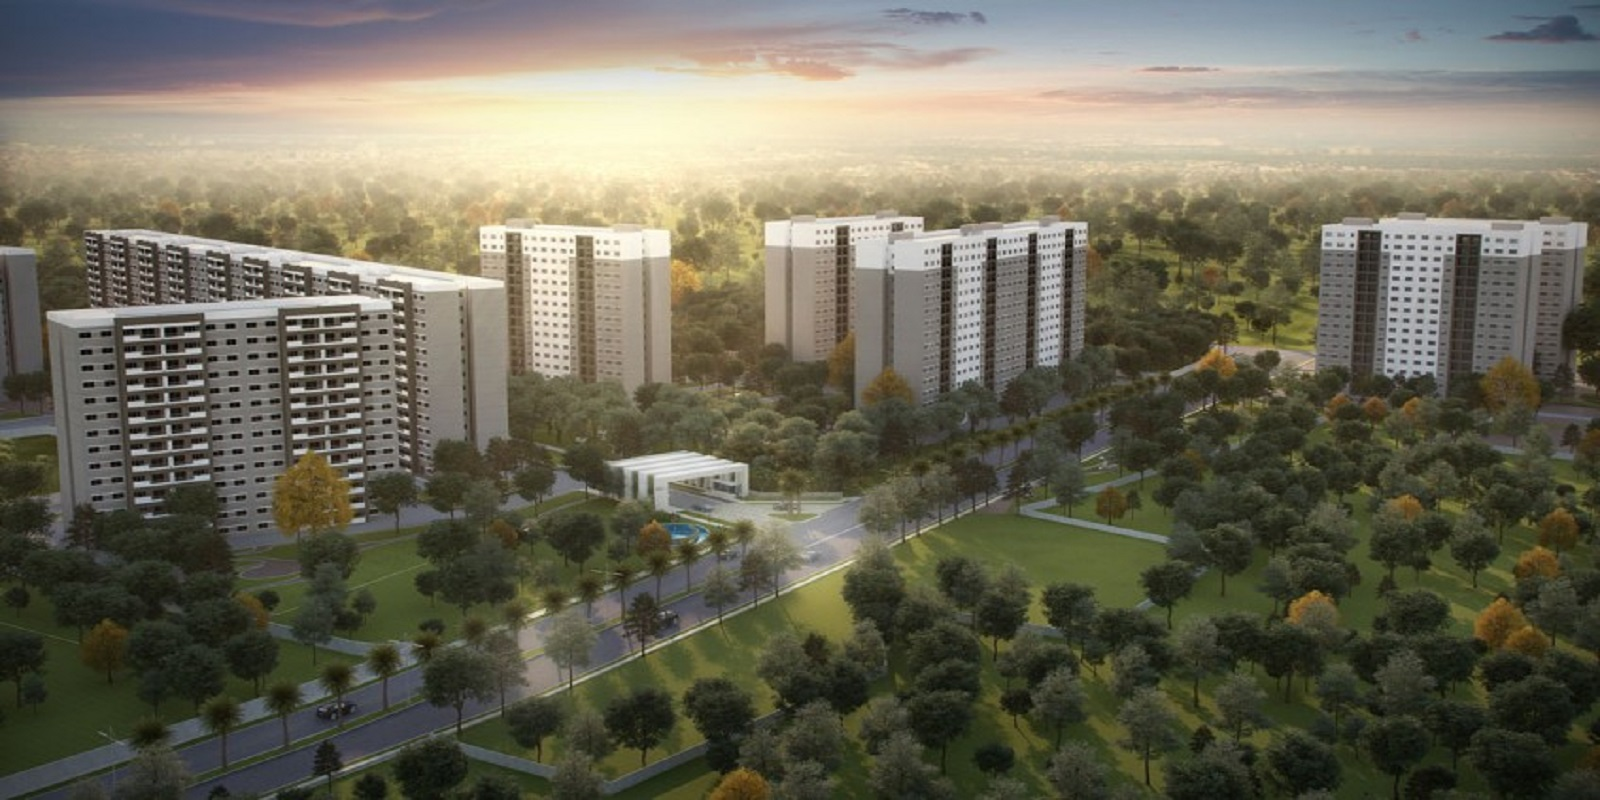 sobha rain forest phase 3 wing 5 and 6 project large image2